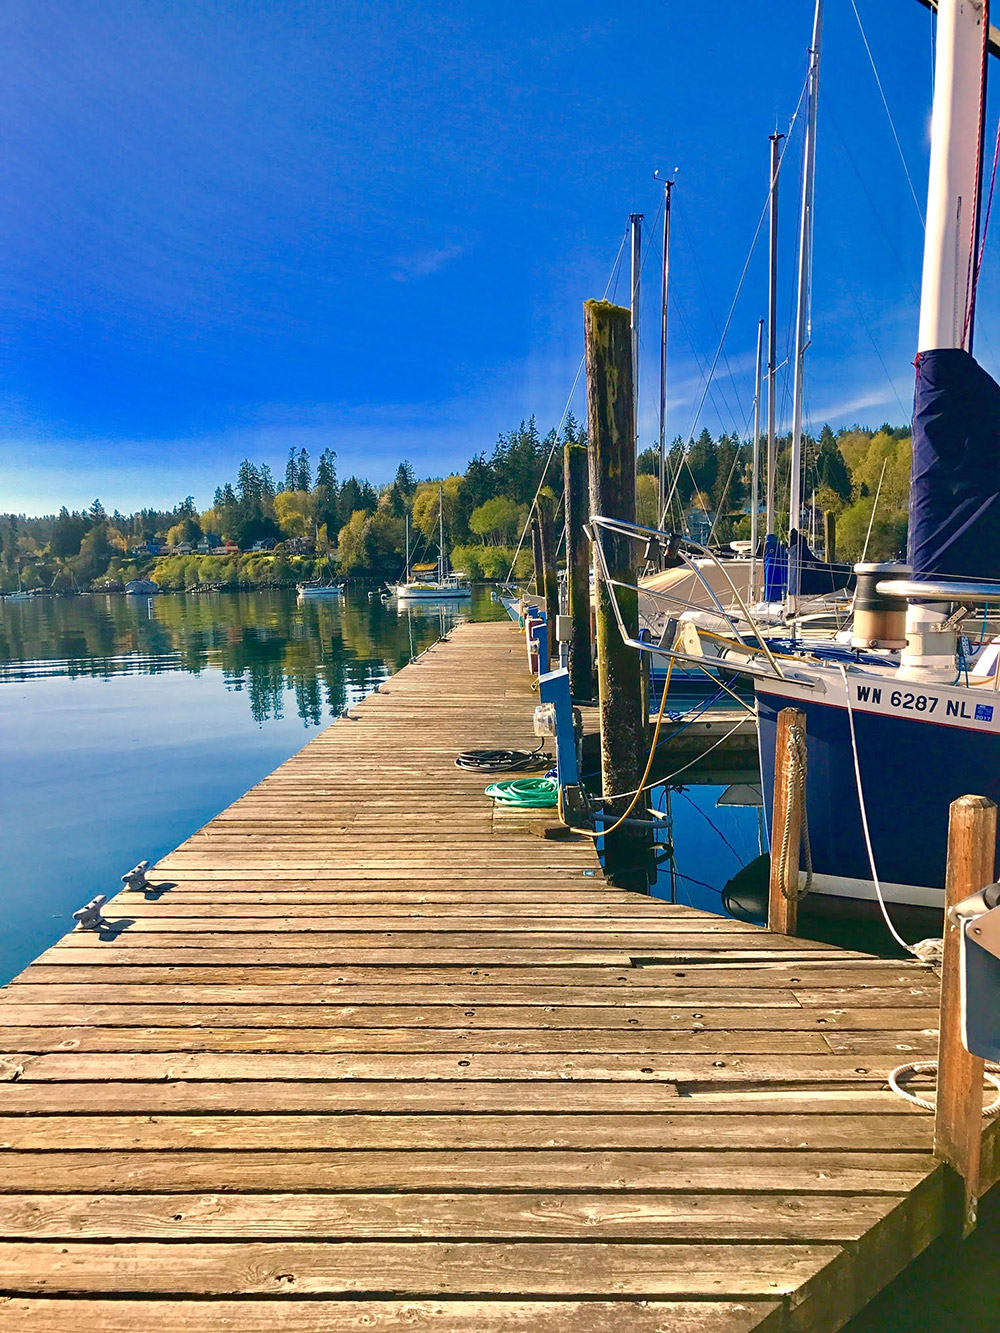 Pam Sproul - Dock View